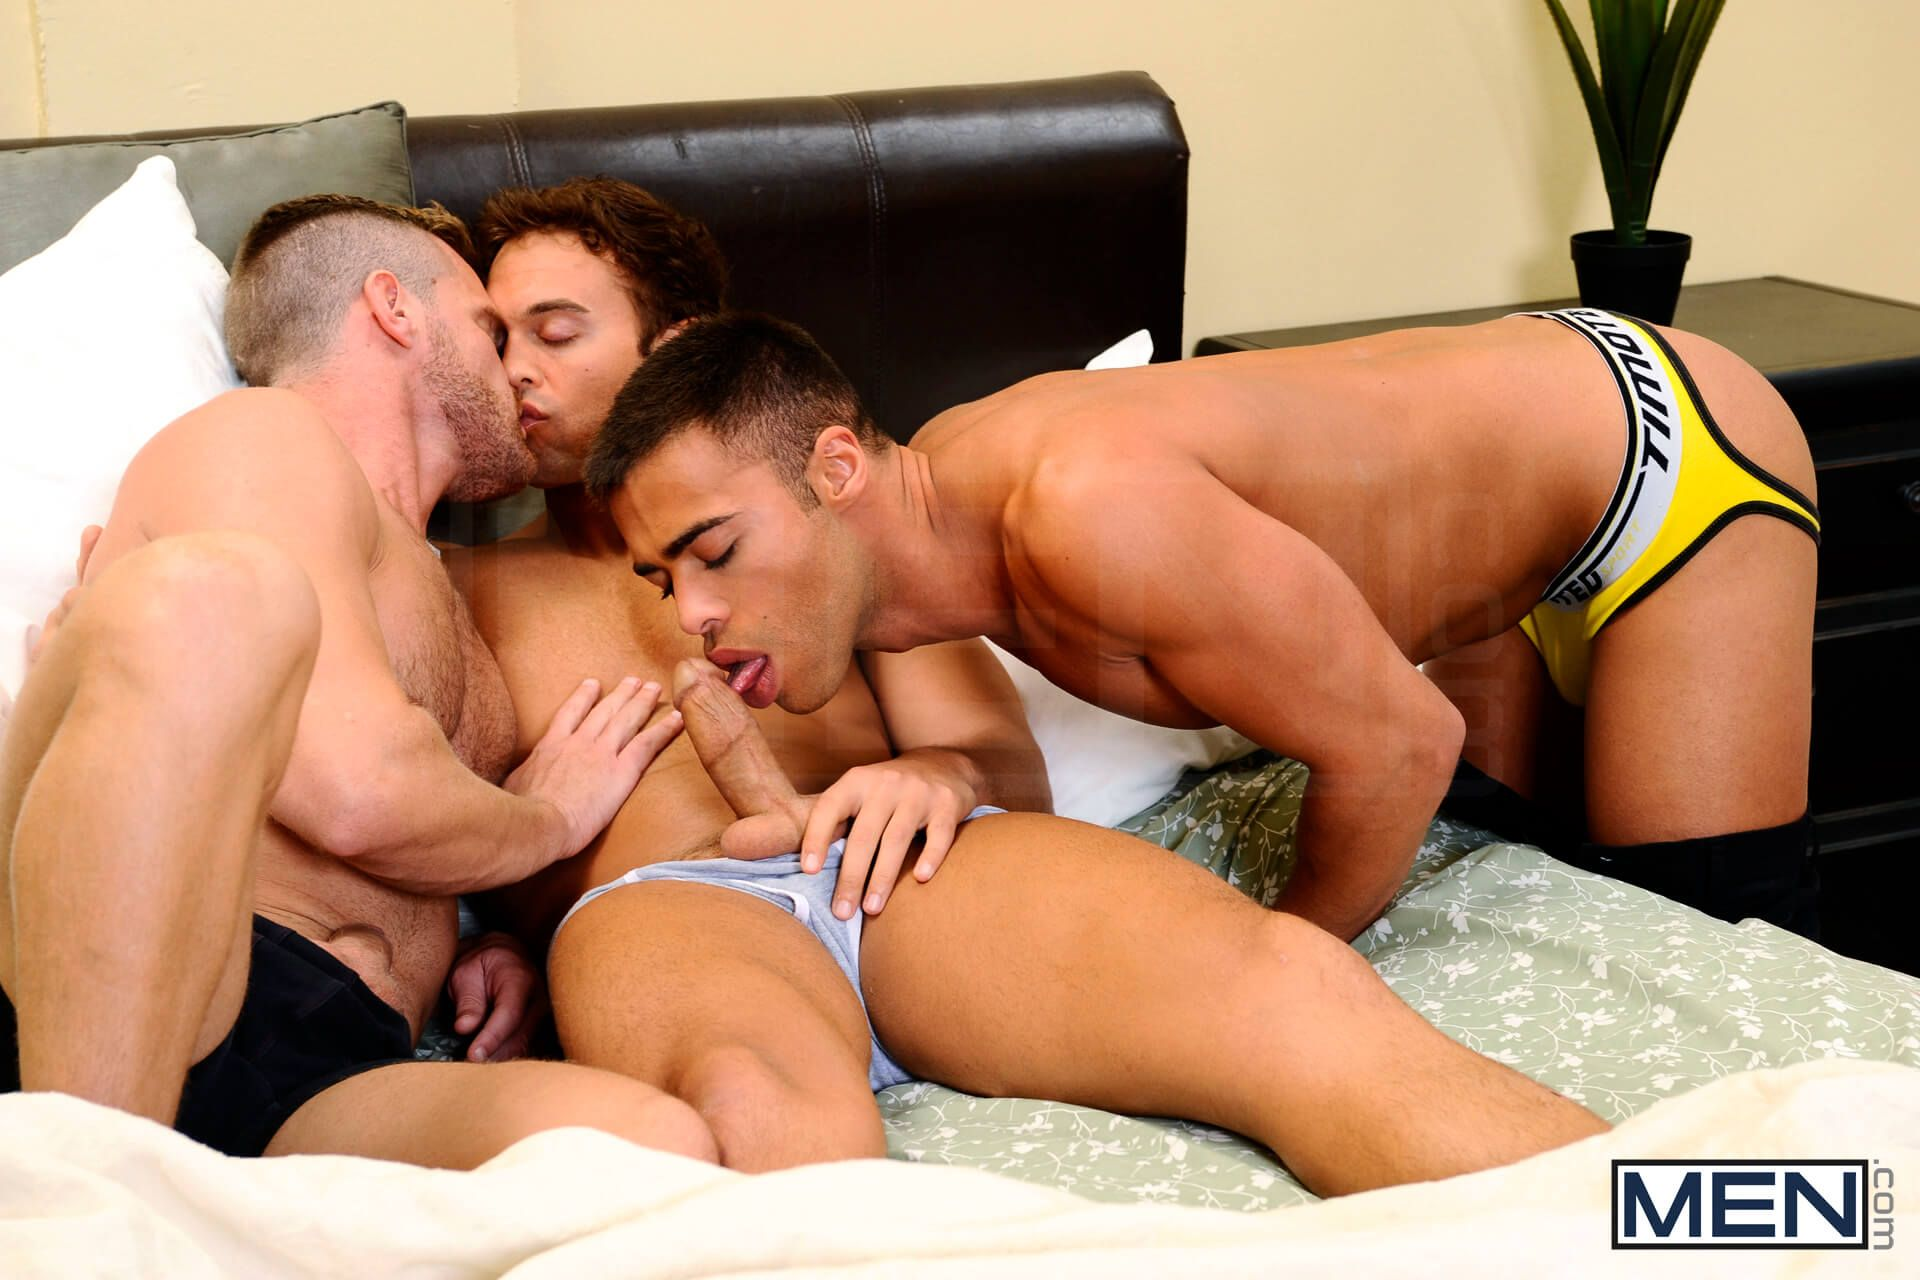 best of Brides porn male Gay